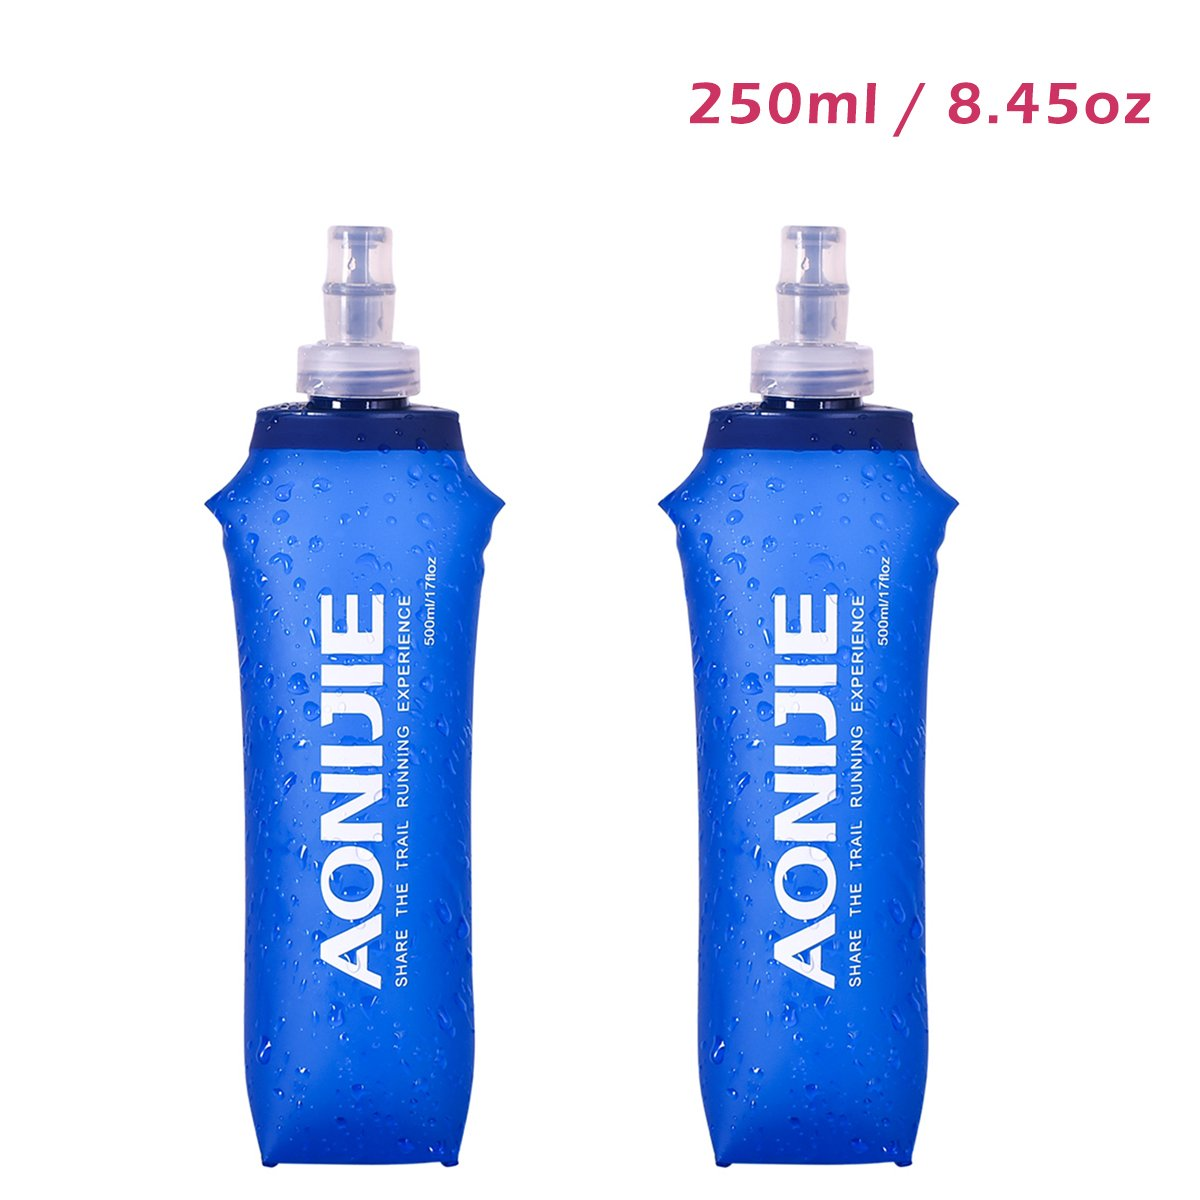 JEELAD BPA-Free Leak-Proof TPU Soft Running Water Bottles for Hydration Pack Vest - Ideal for Running Hiking Cycling (250ml (8.45oz) - 2 Pack)